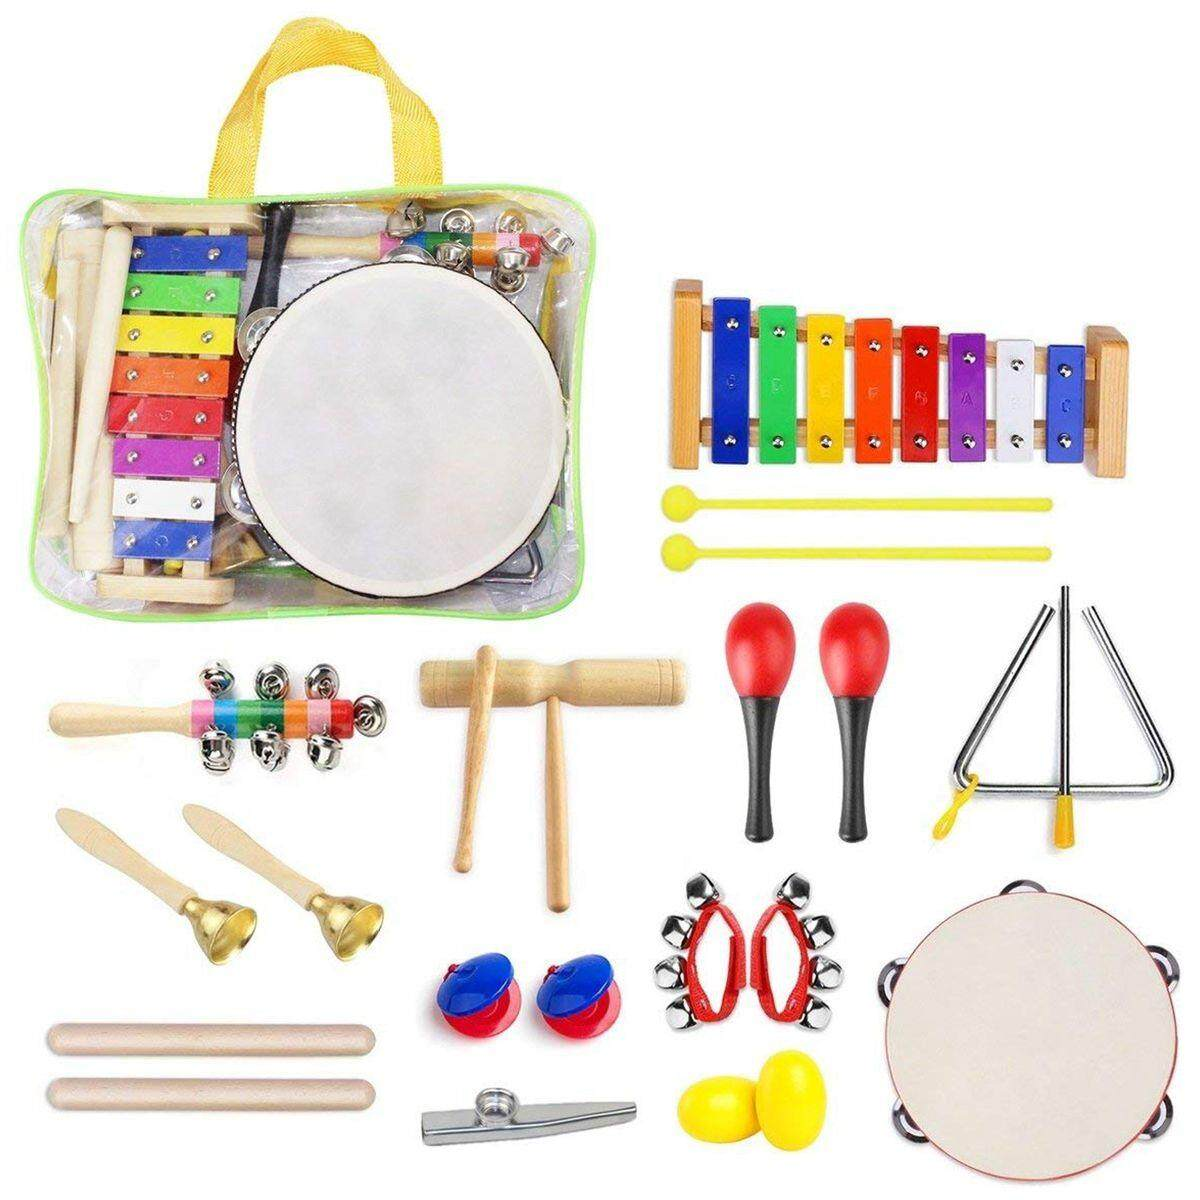 22 Pcs Toddler Musical Instruments Set Percussion Instrument Toys Toddler Musical Toys Set Rhythm Band Set Birthday Gift For Toddlers Kids Preschool Children With Storage Bag By Rainning.